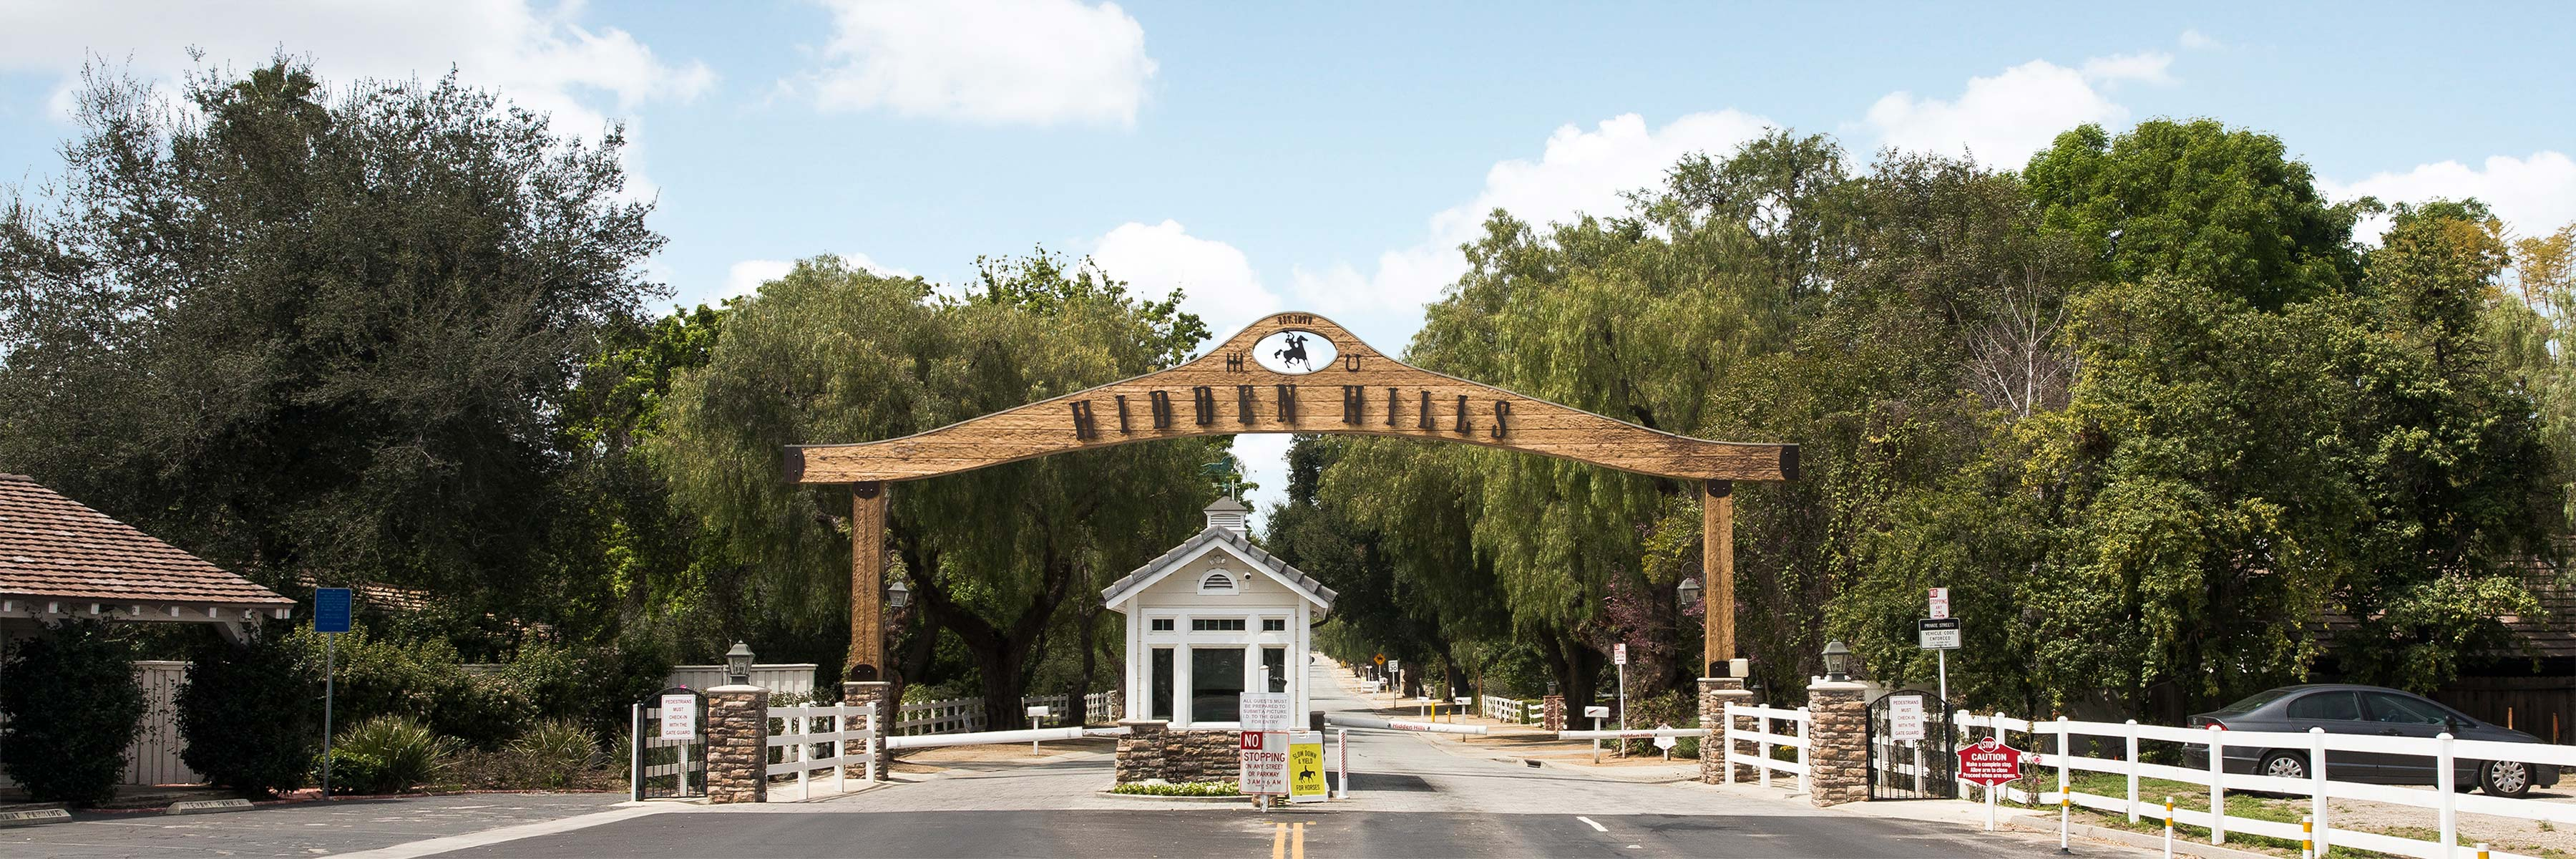 Long Valley Gate